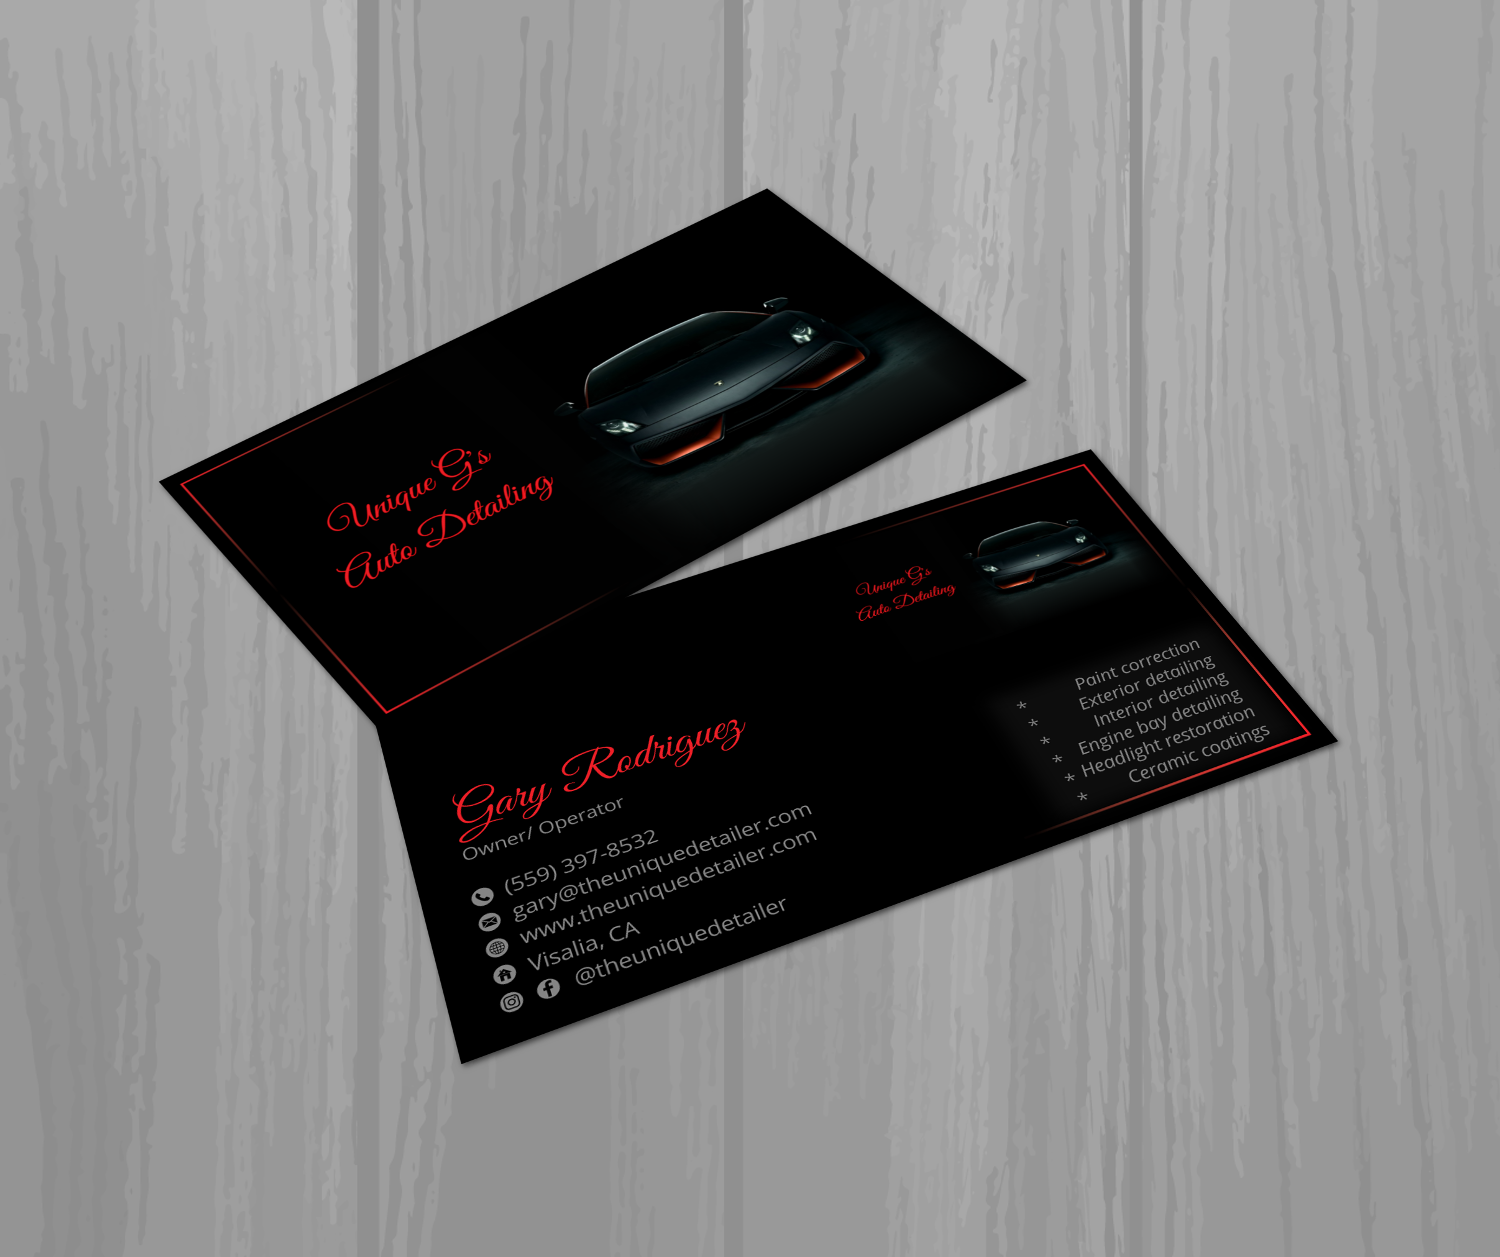 Modern professional automotive business card design for a company business card design by tanama creations for this project design 17991654 reheart Gallery